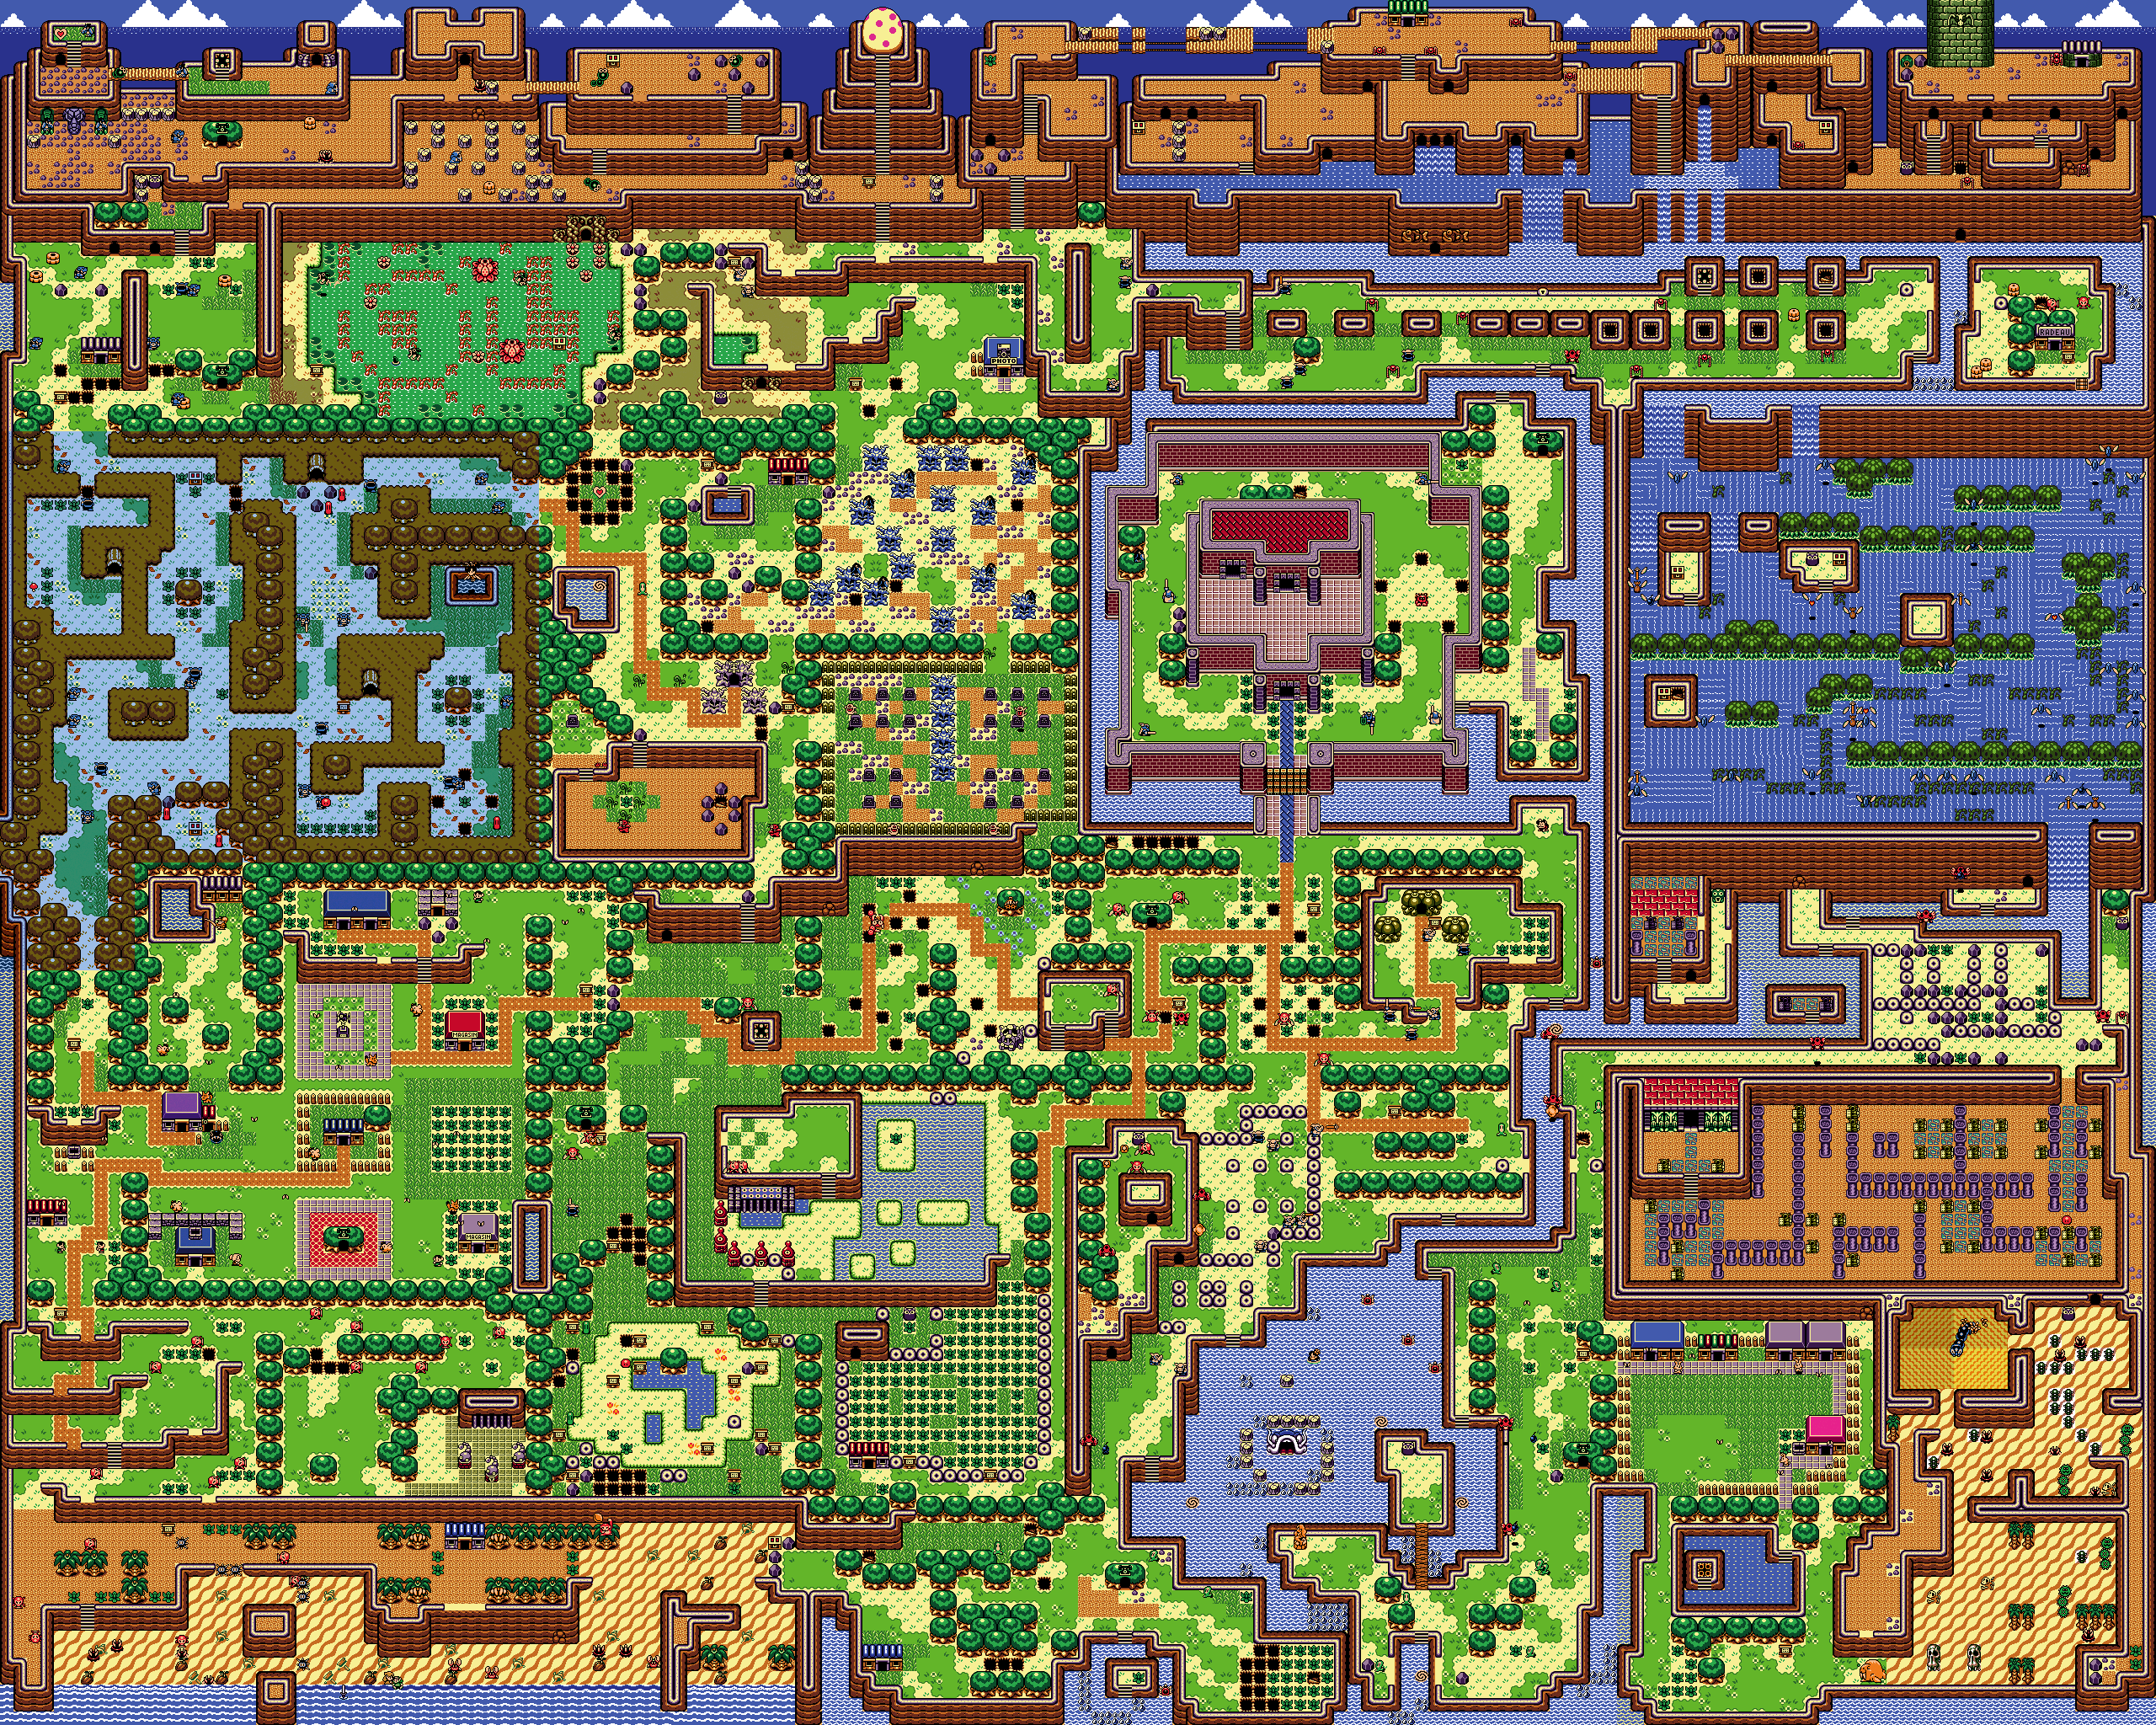 Link S Awakening Overworld Map